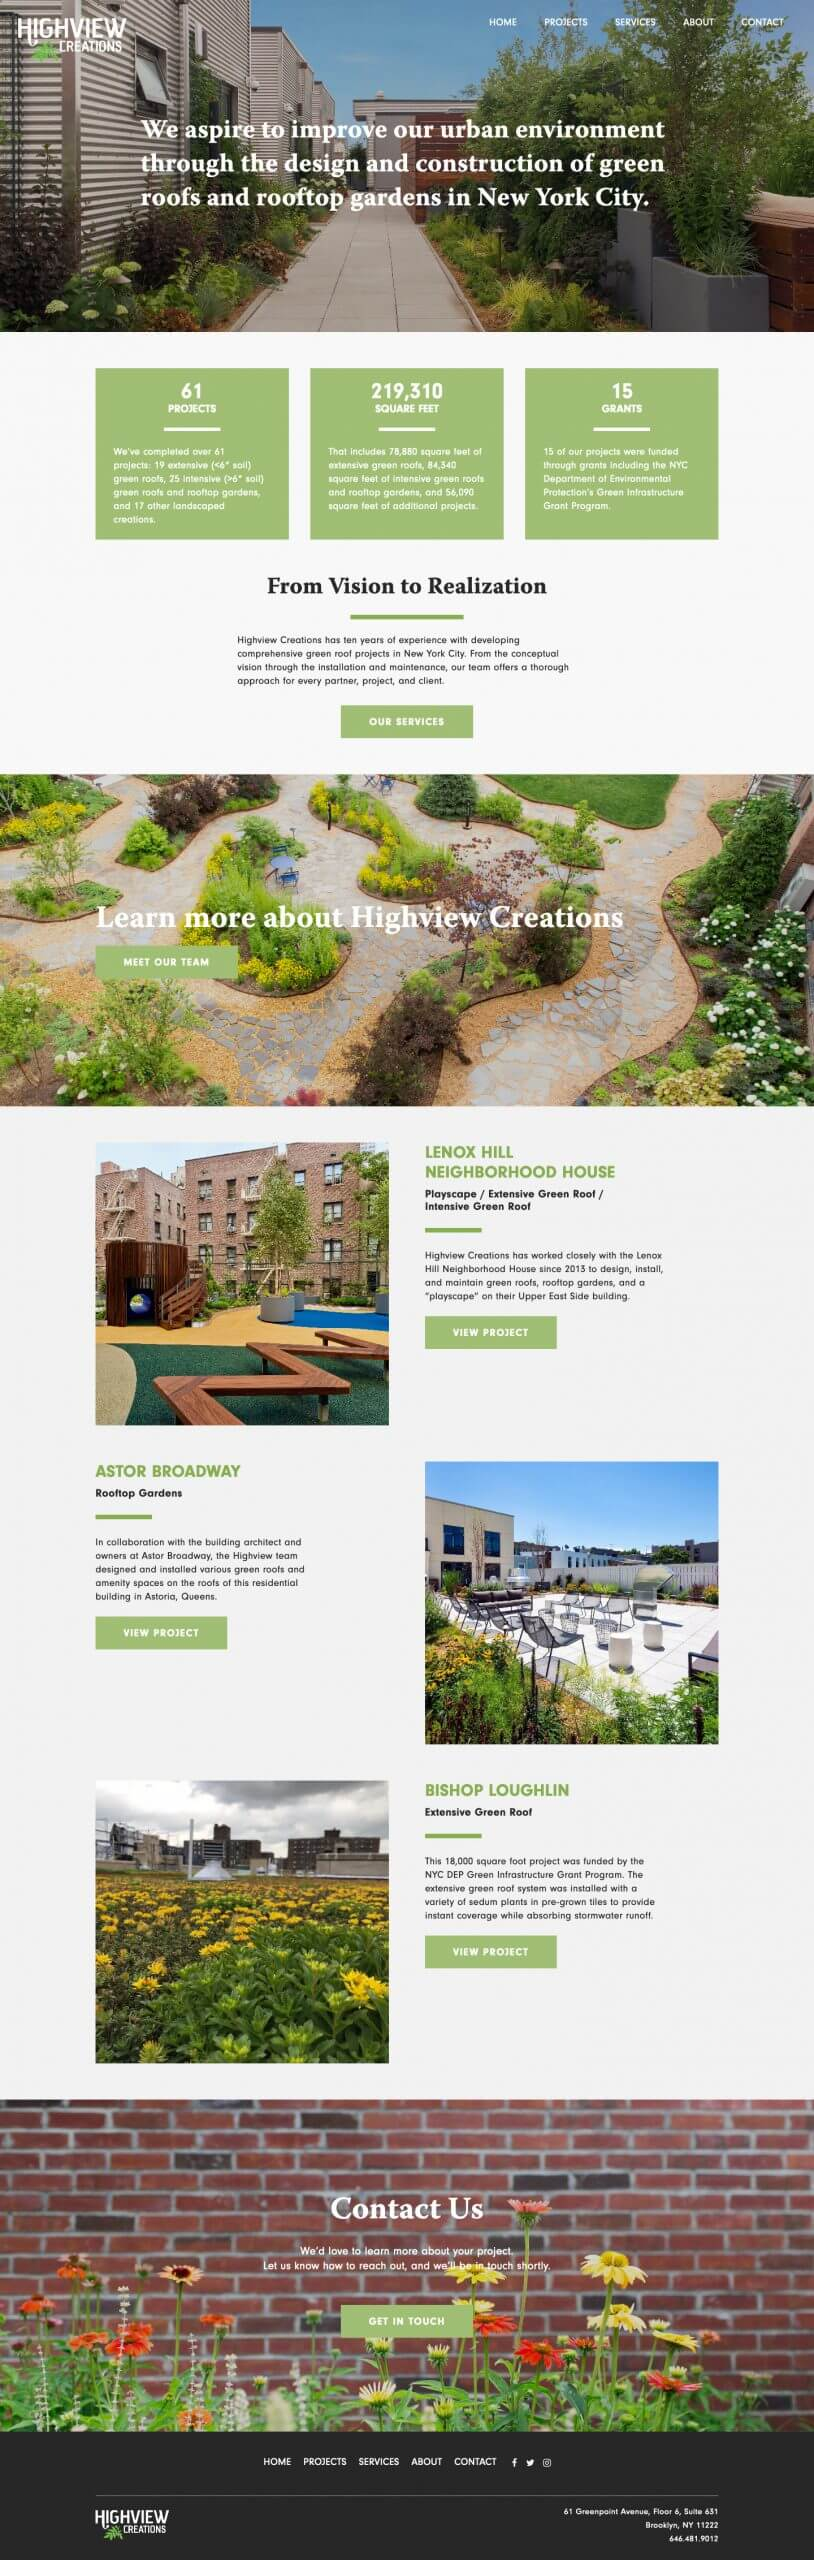 highview full2 brooklyn web design bushwick design